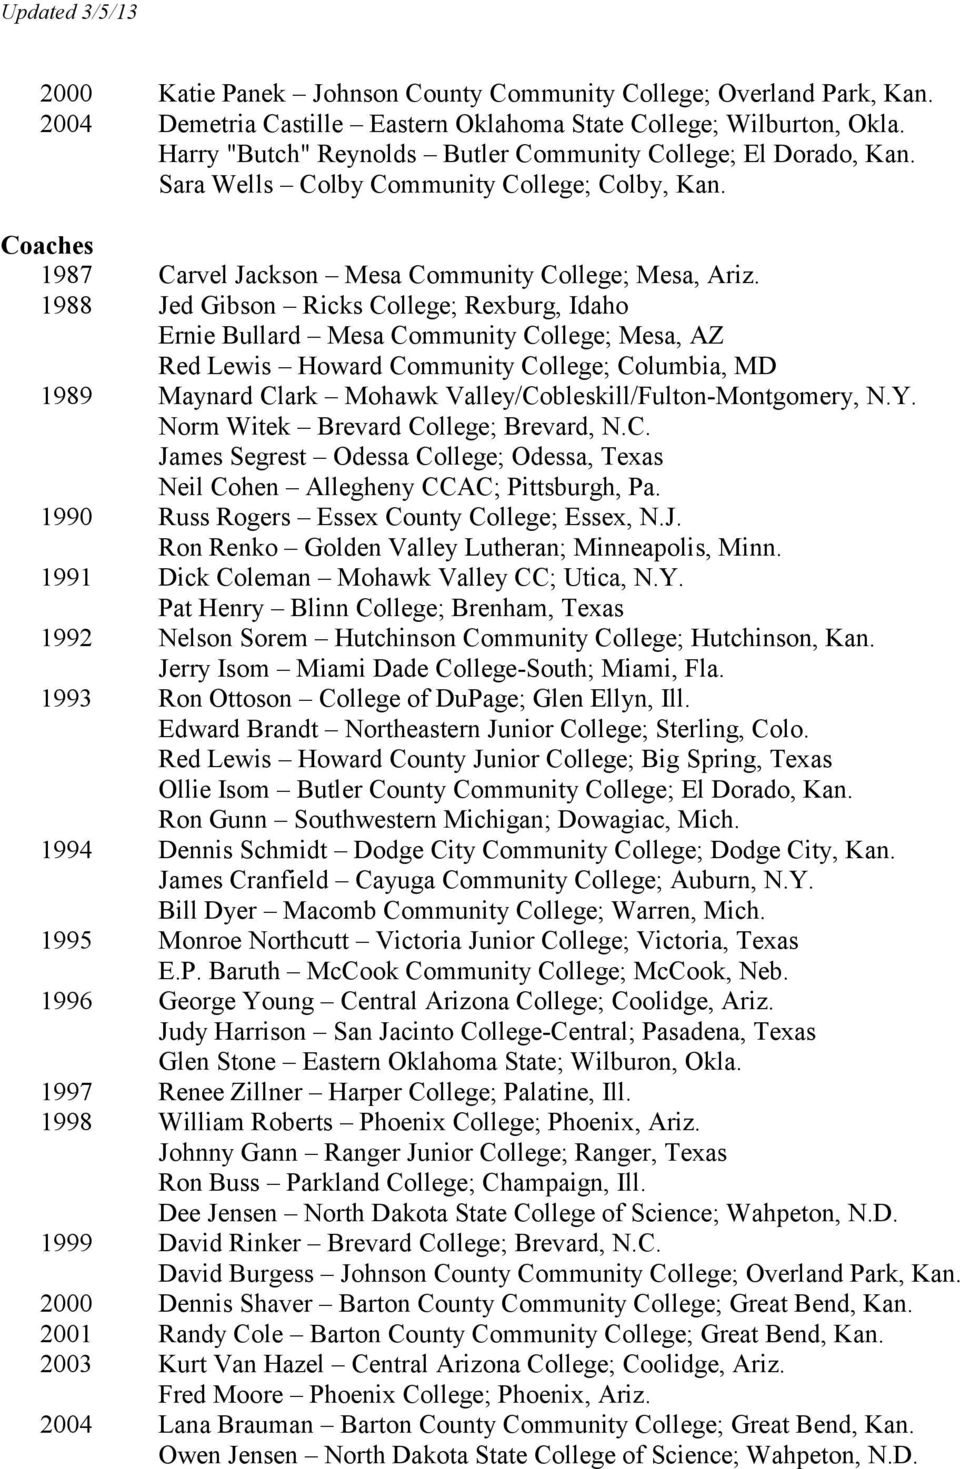 1988 Jed Gibson Ricks College; Rexburg, Idaho Ernie Bullard Mesa Community College; Mesa, AZ Red Lewis Howard Community College; Columbia, MD 1989 Maynard Clark Mohawk